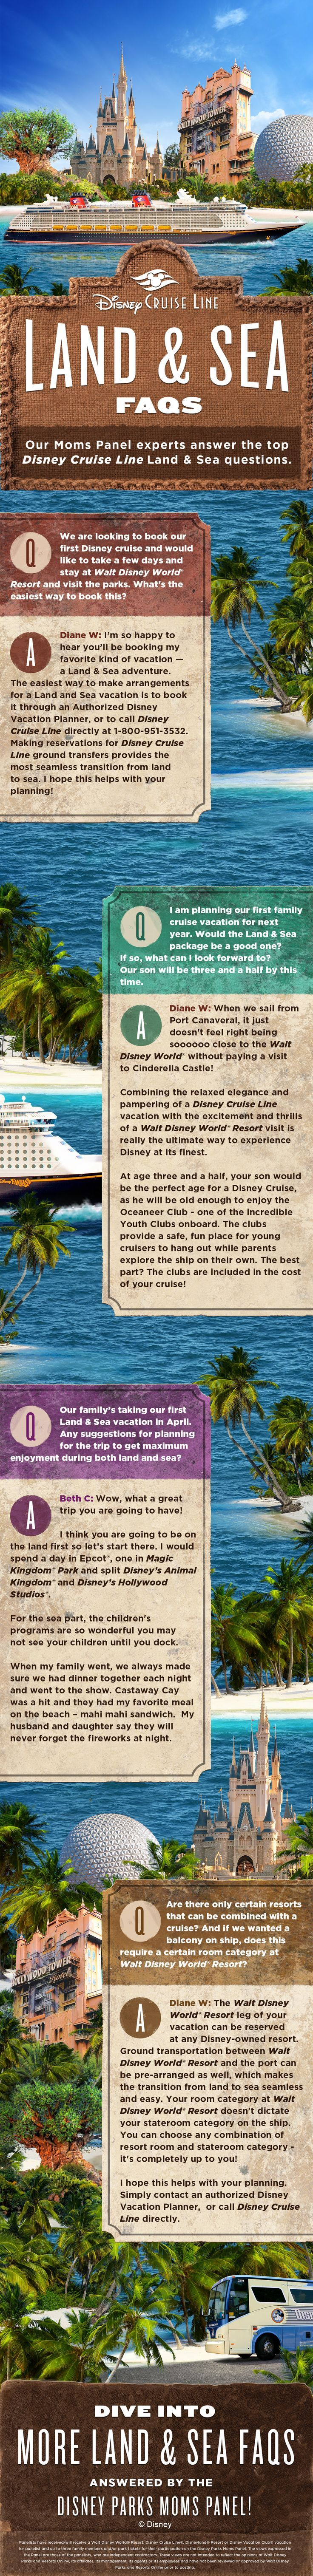 183 Best Magical Vacation Planner By Darryl Barrios Images On